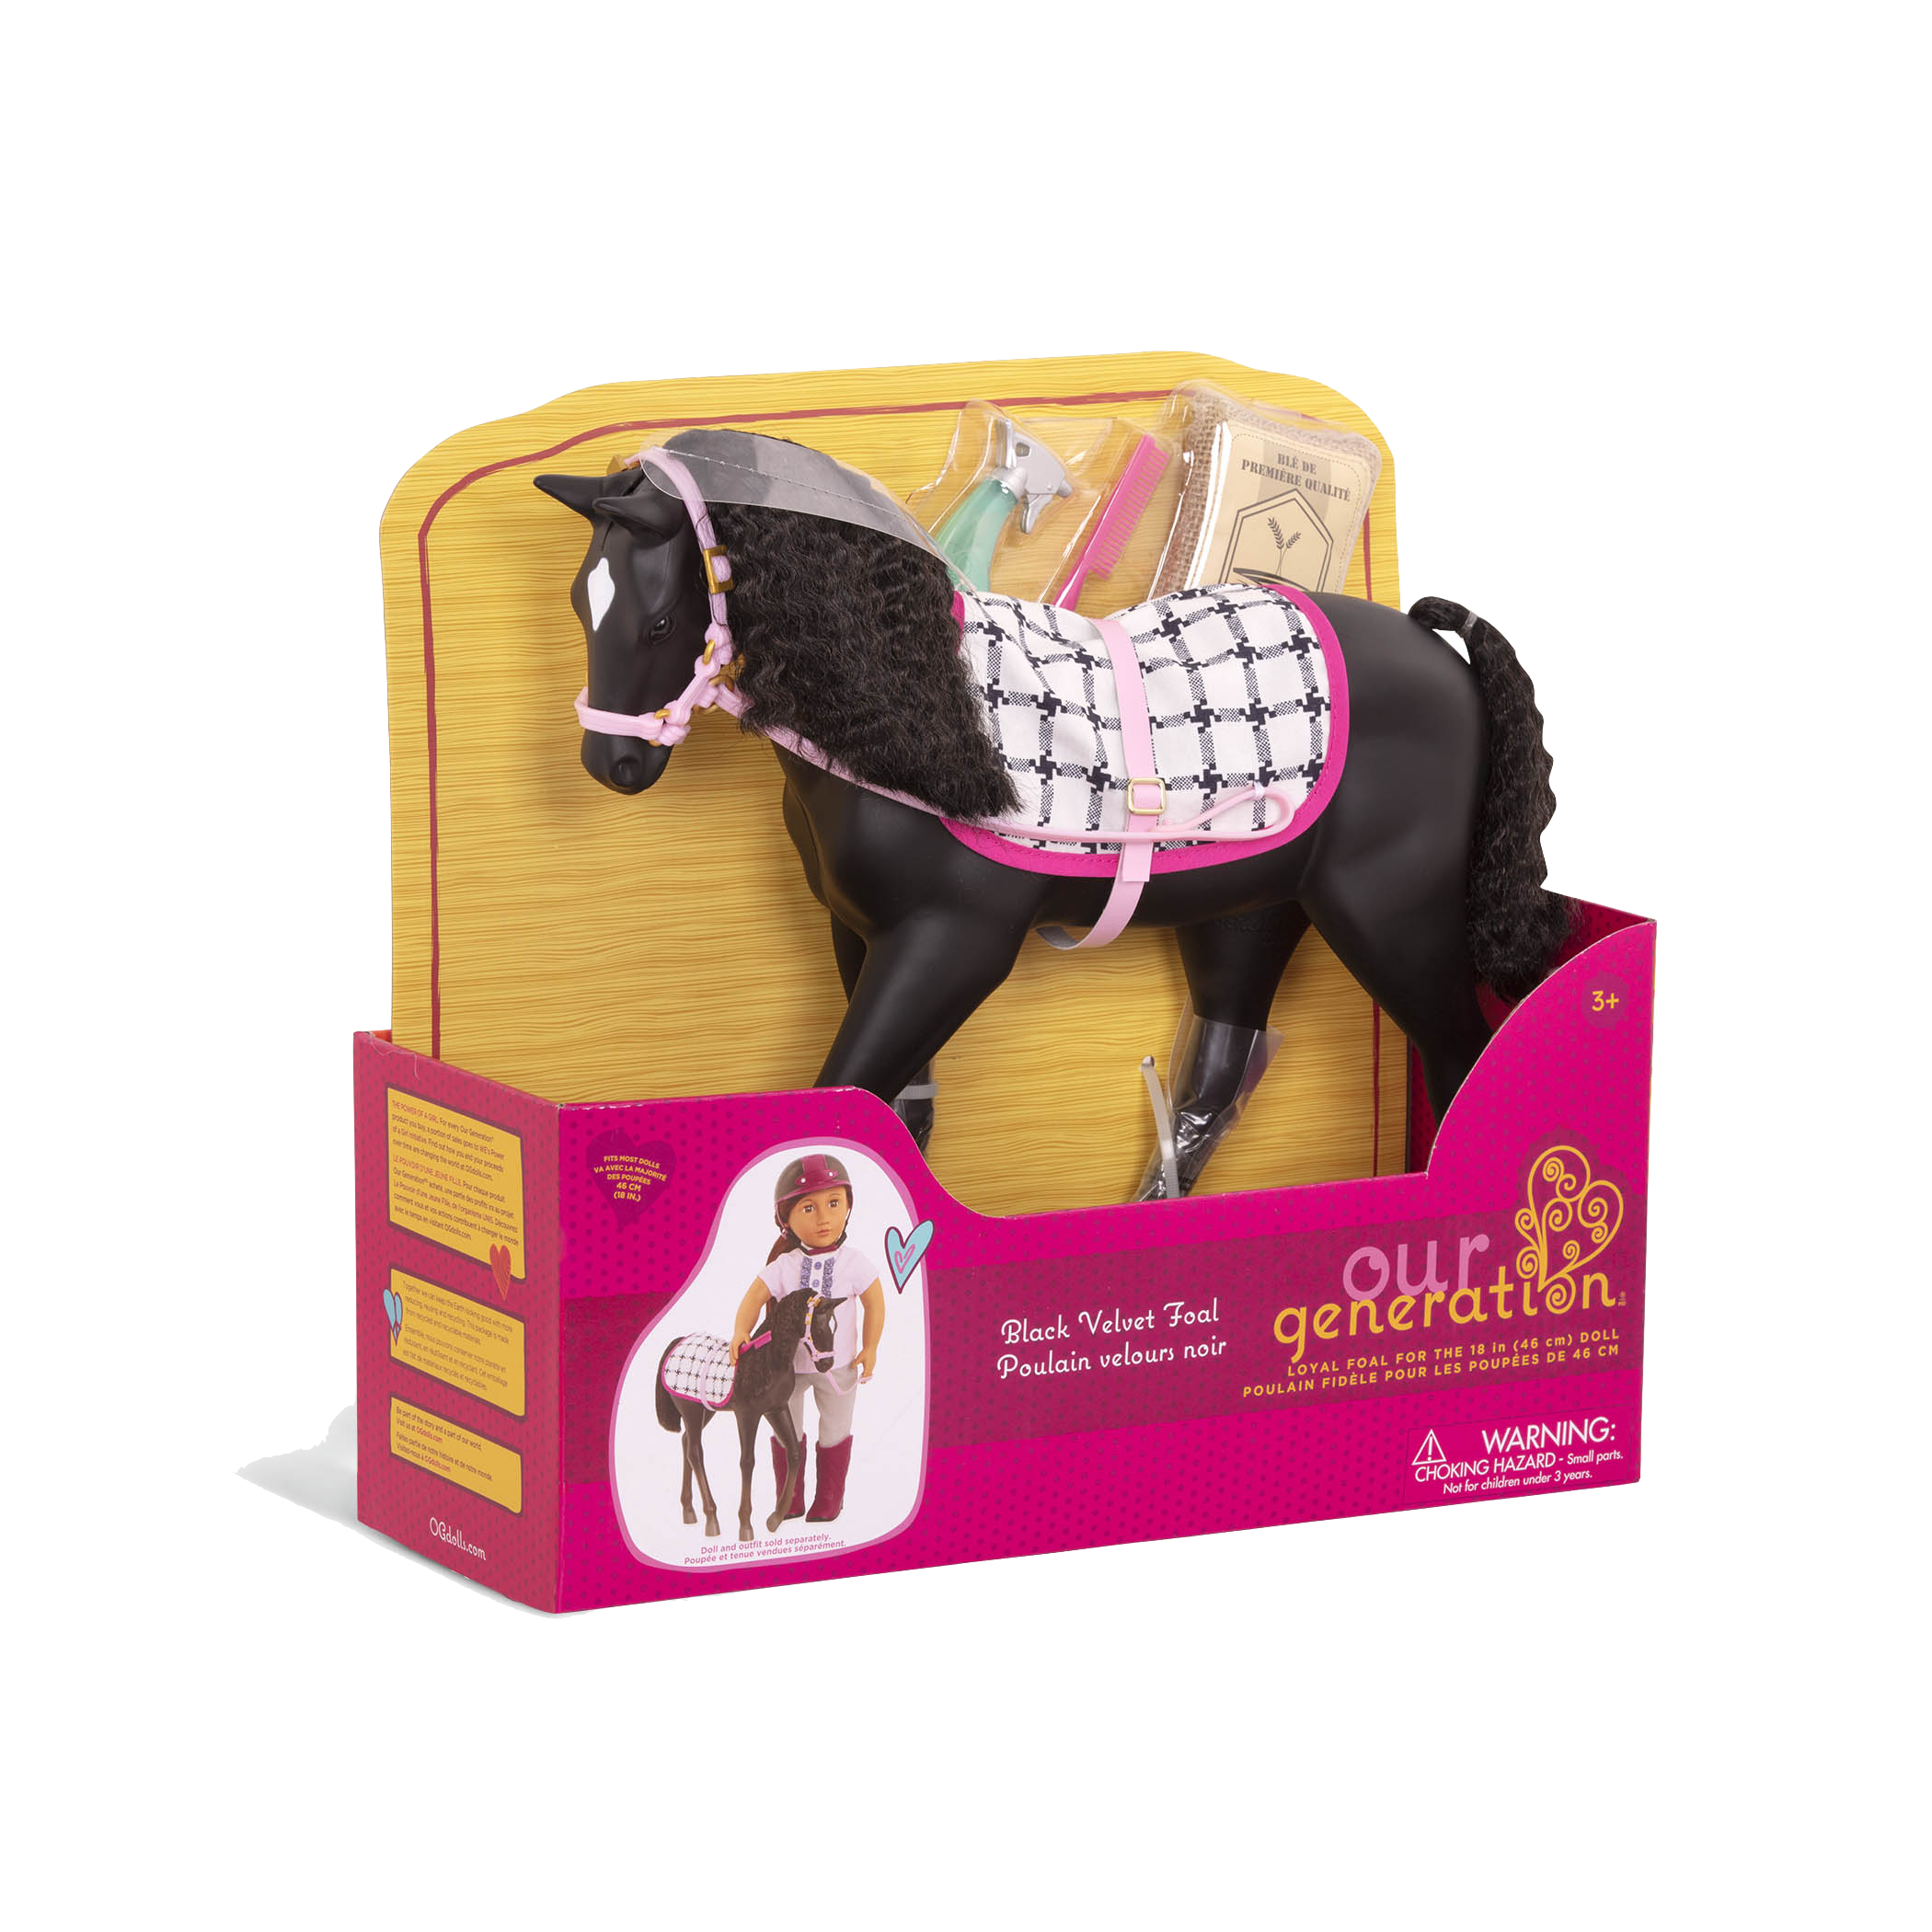 Black Velvet Foal Toy Horse For 18 Inch Dolls Our Generation